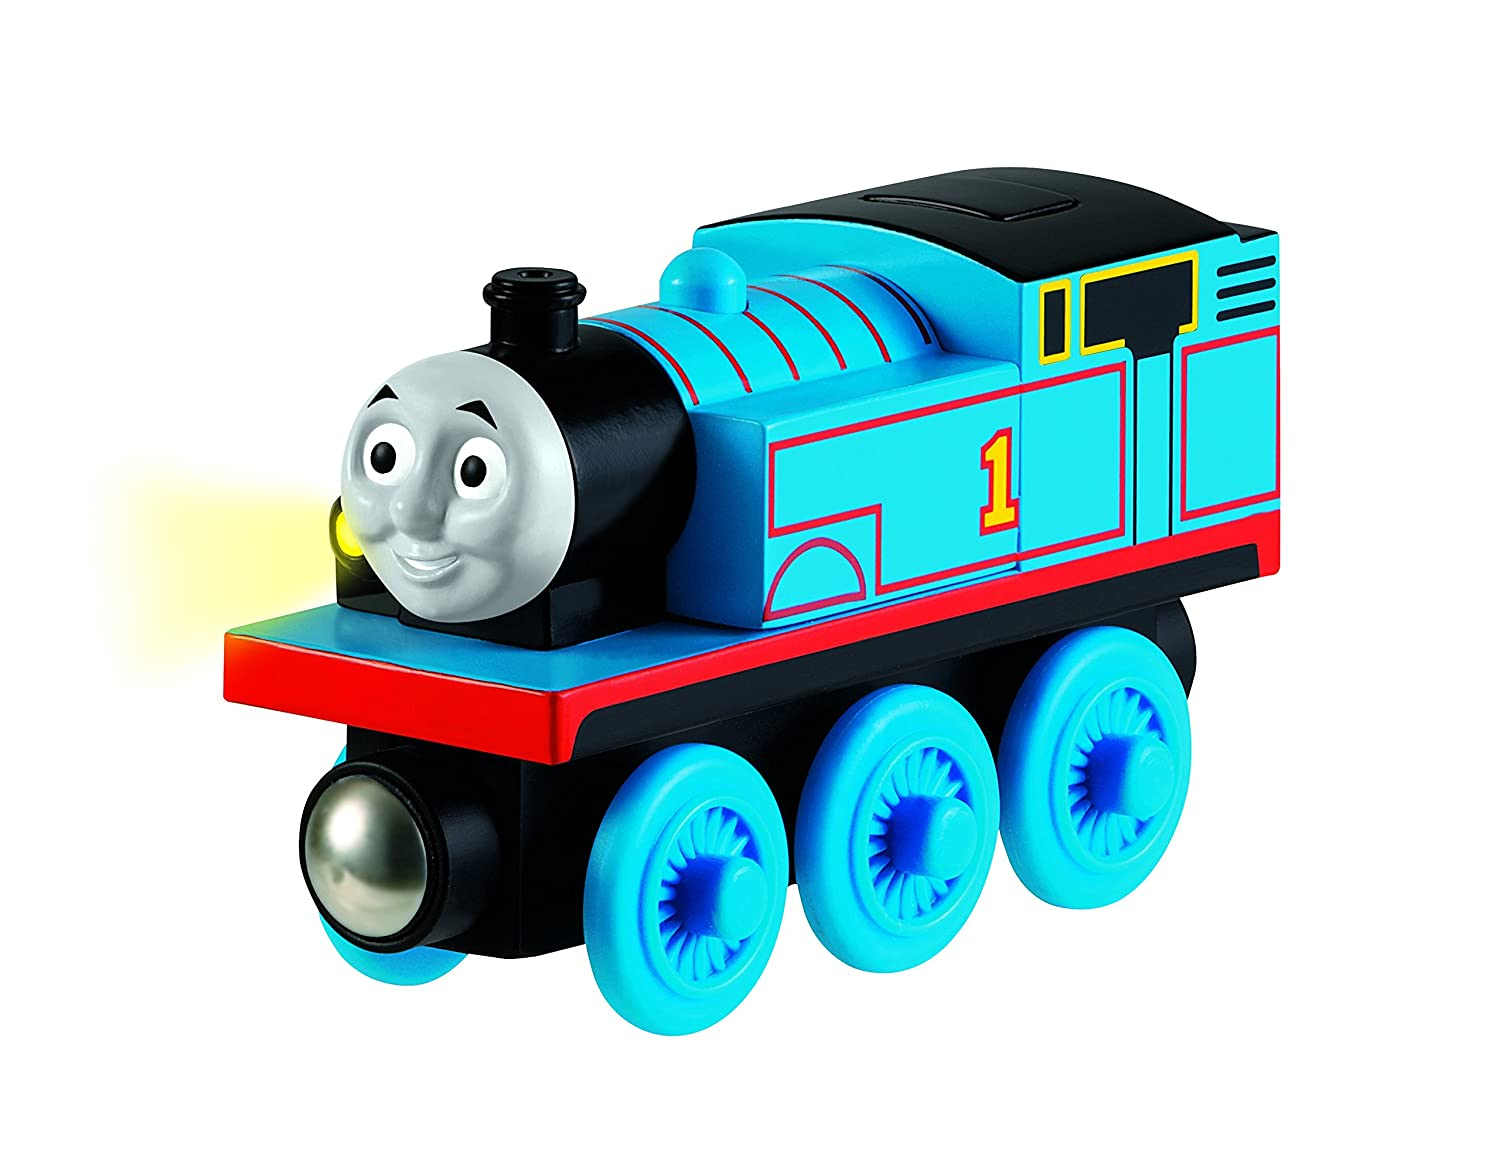 Train car side view login to view prices realised - Amazon Com Fisher Price Thomas Friends Wooden Railway Train Thomas Battery Operated Train Toys Games